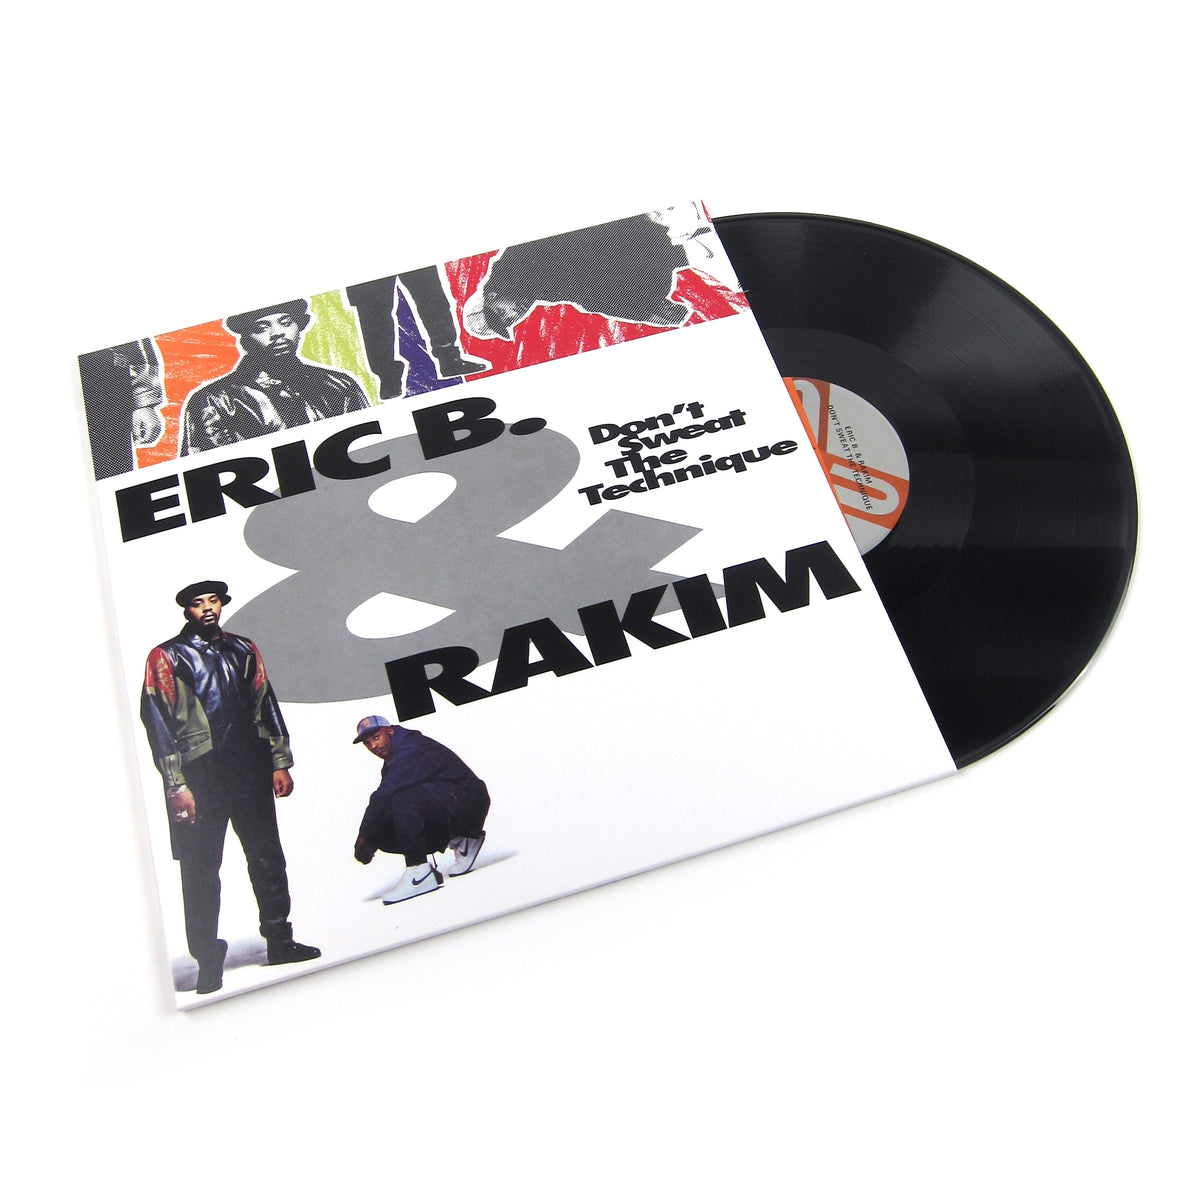 Eric B. & Rakim: Don't Sweat The Technique Vinyl 2LP